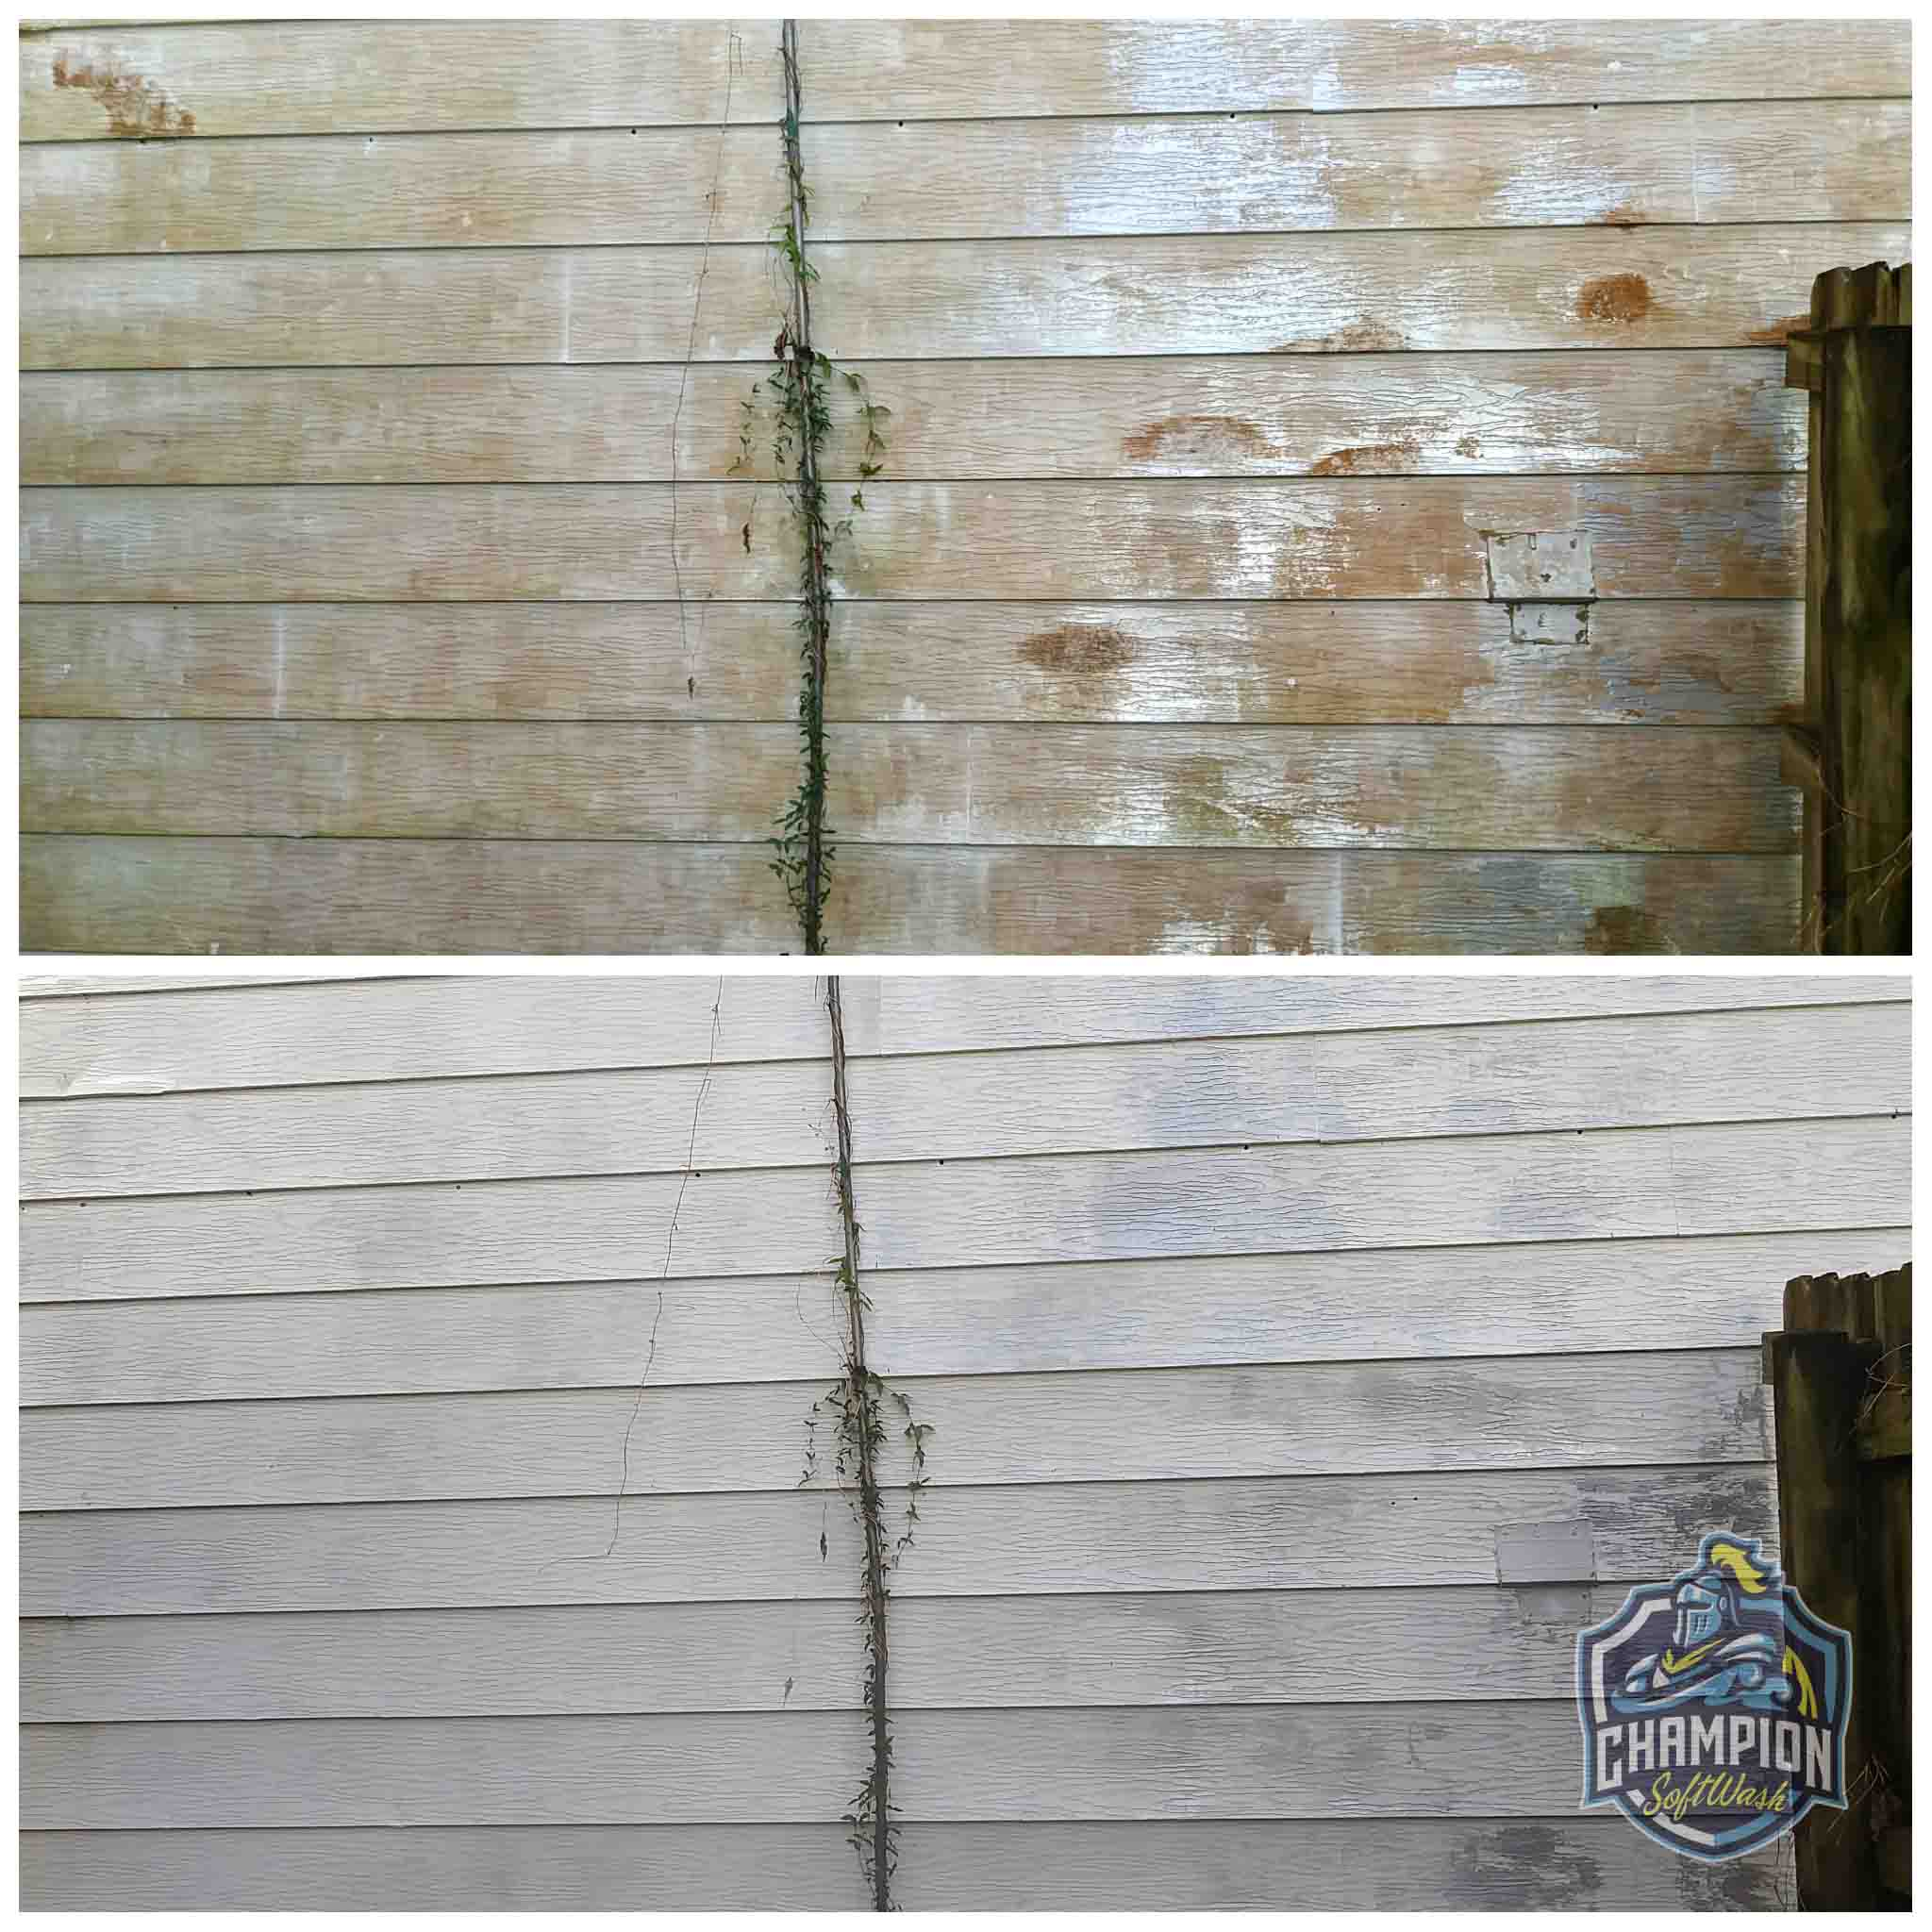 Aluminum siding soft washing, pressure washing, house wash, dirty house